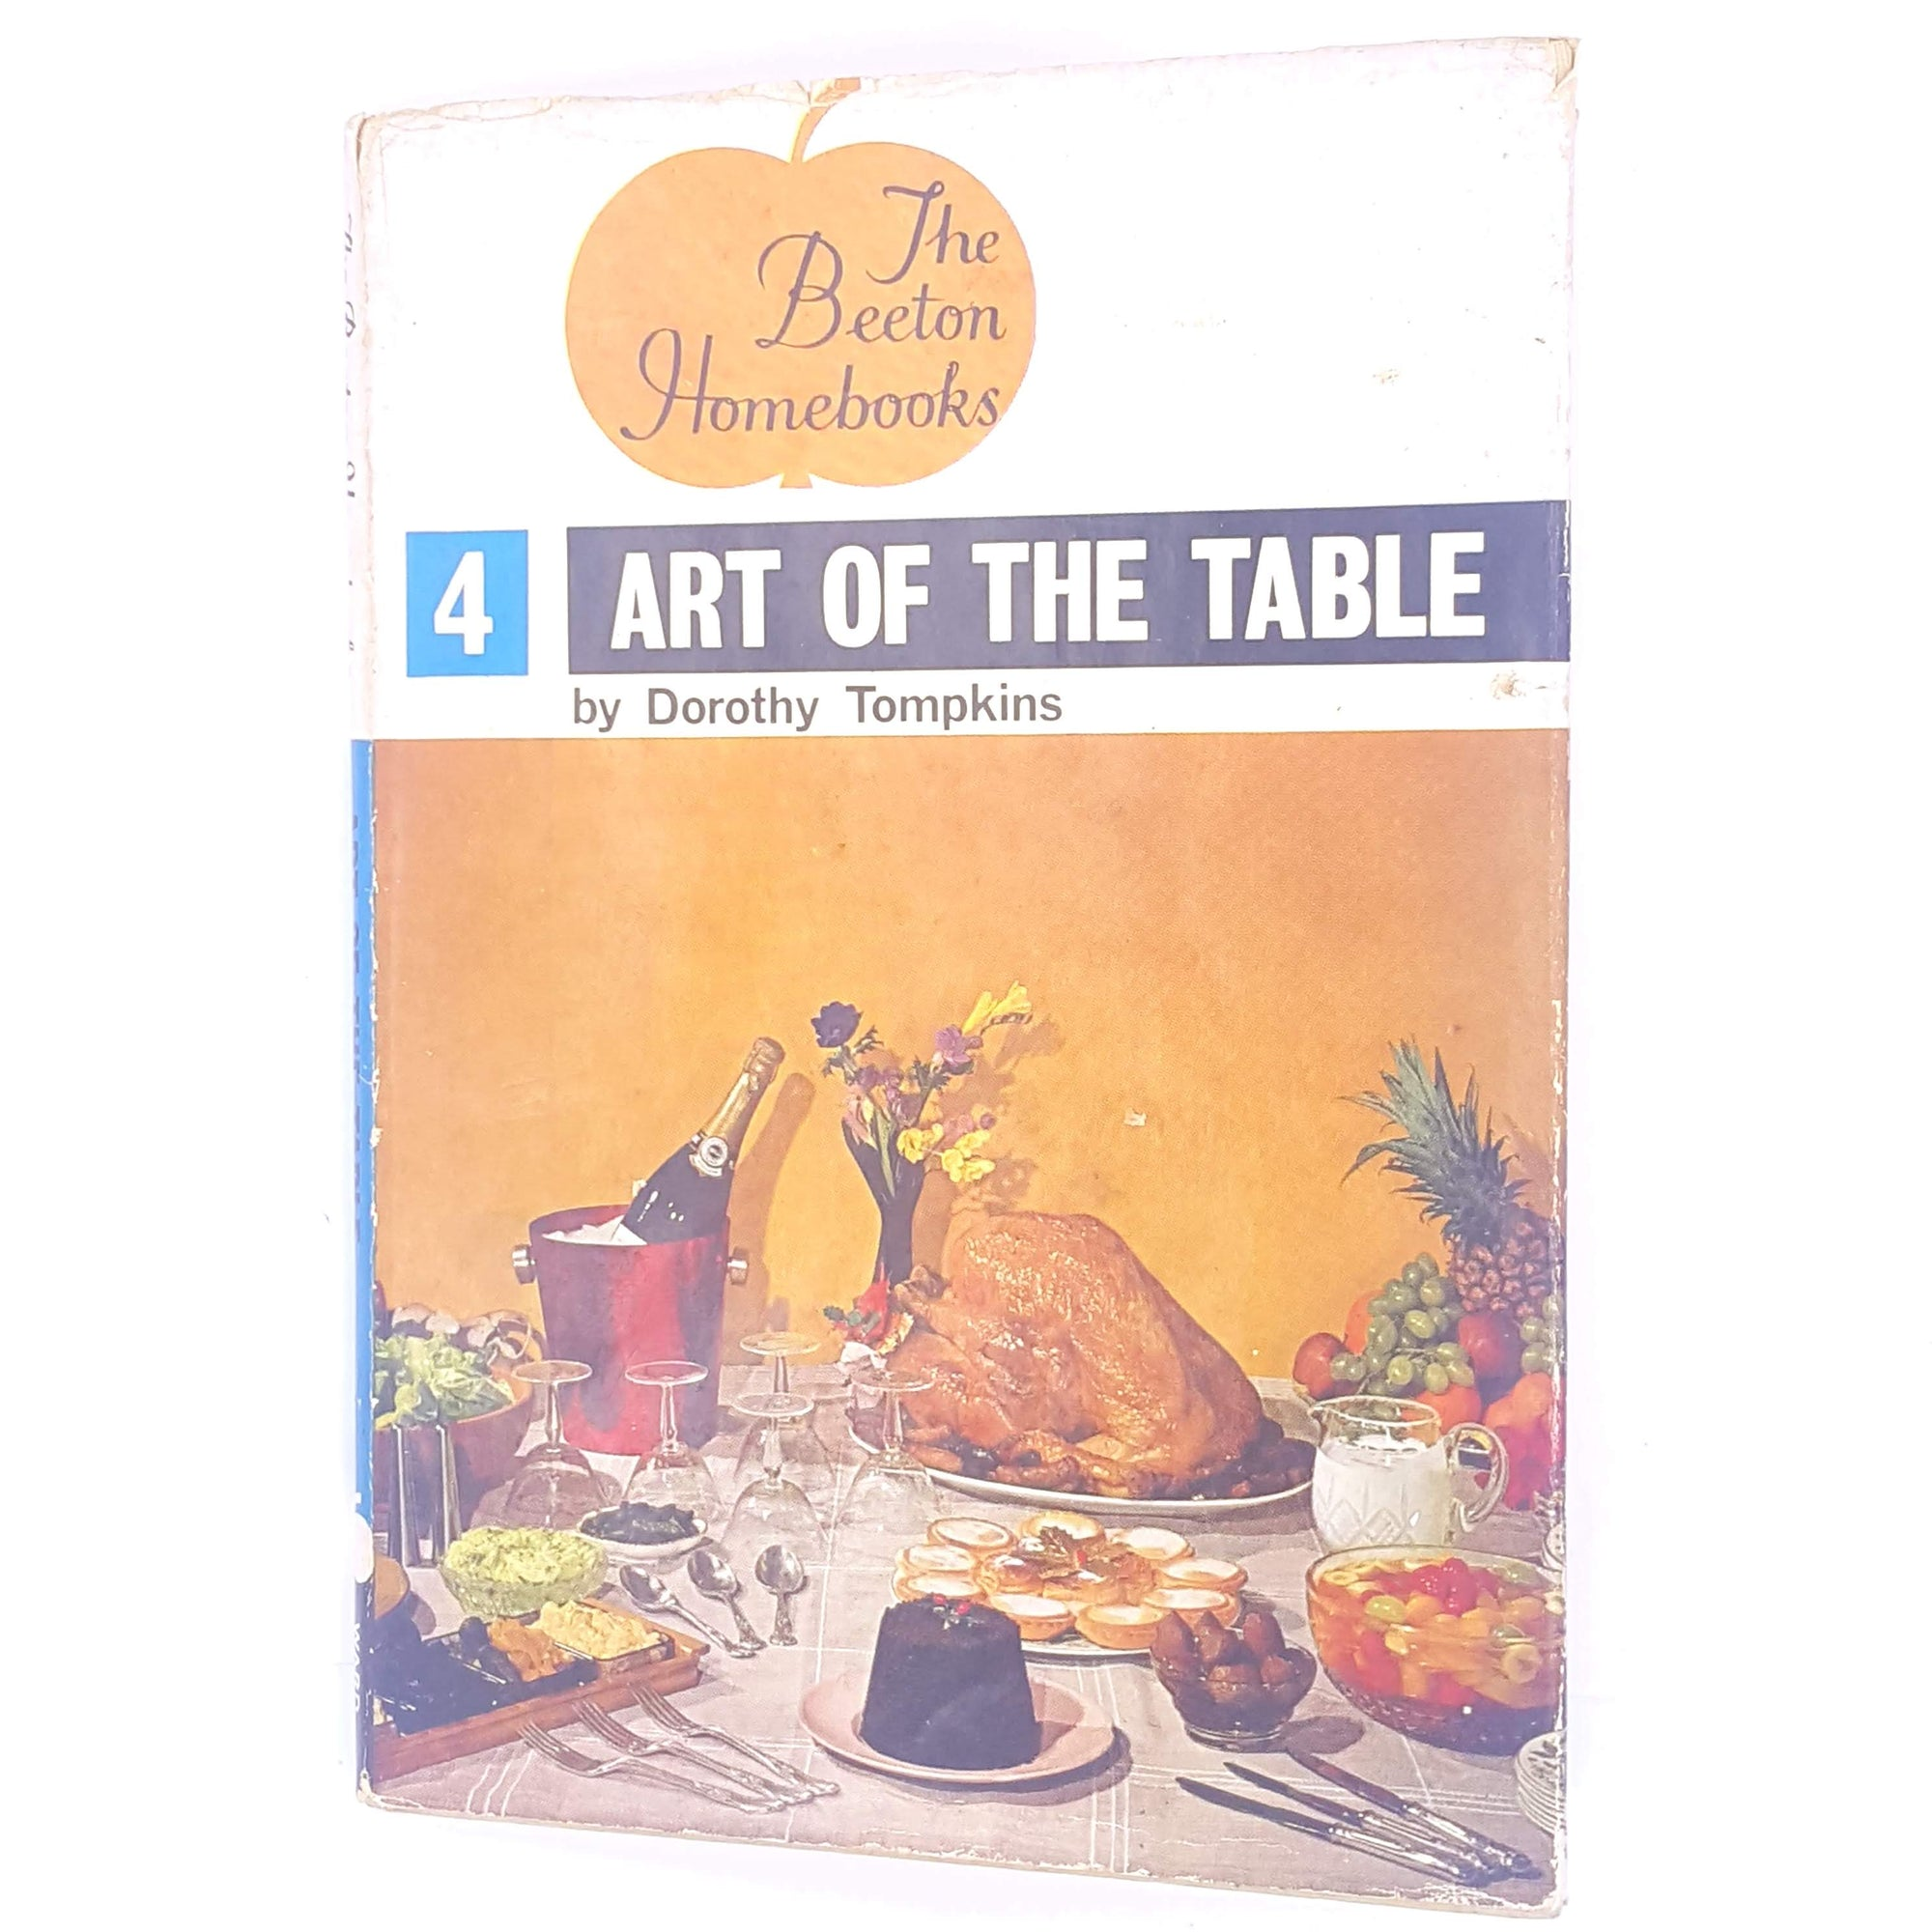 The Art of the Table 4 by Dorothy Tompkins 1963